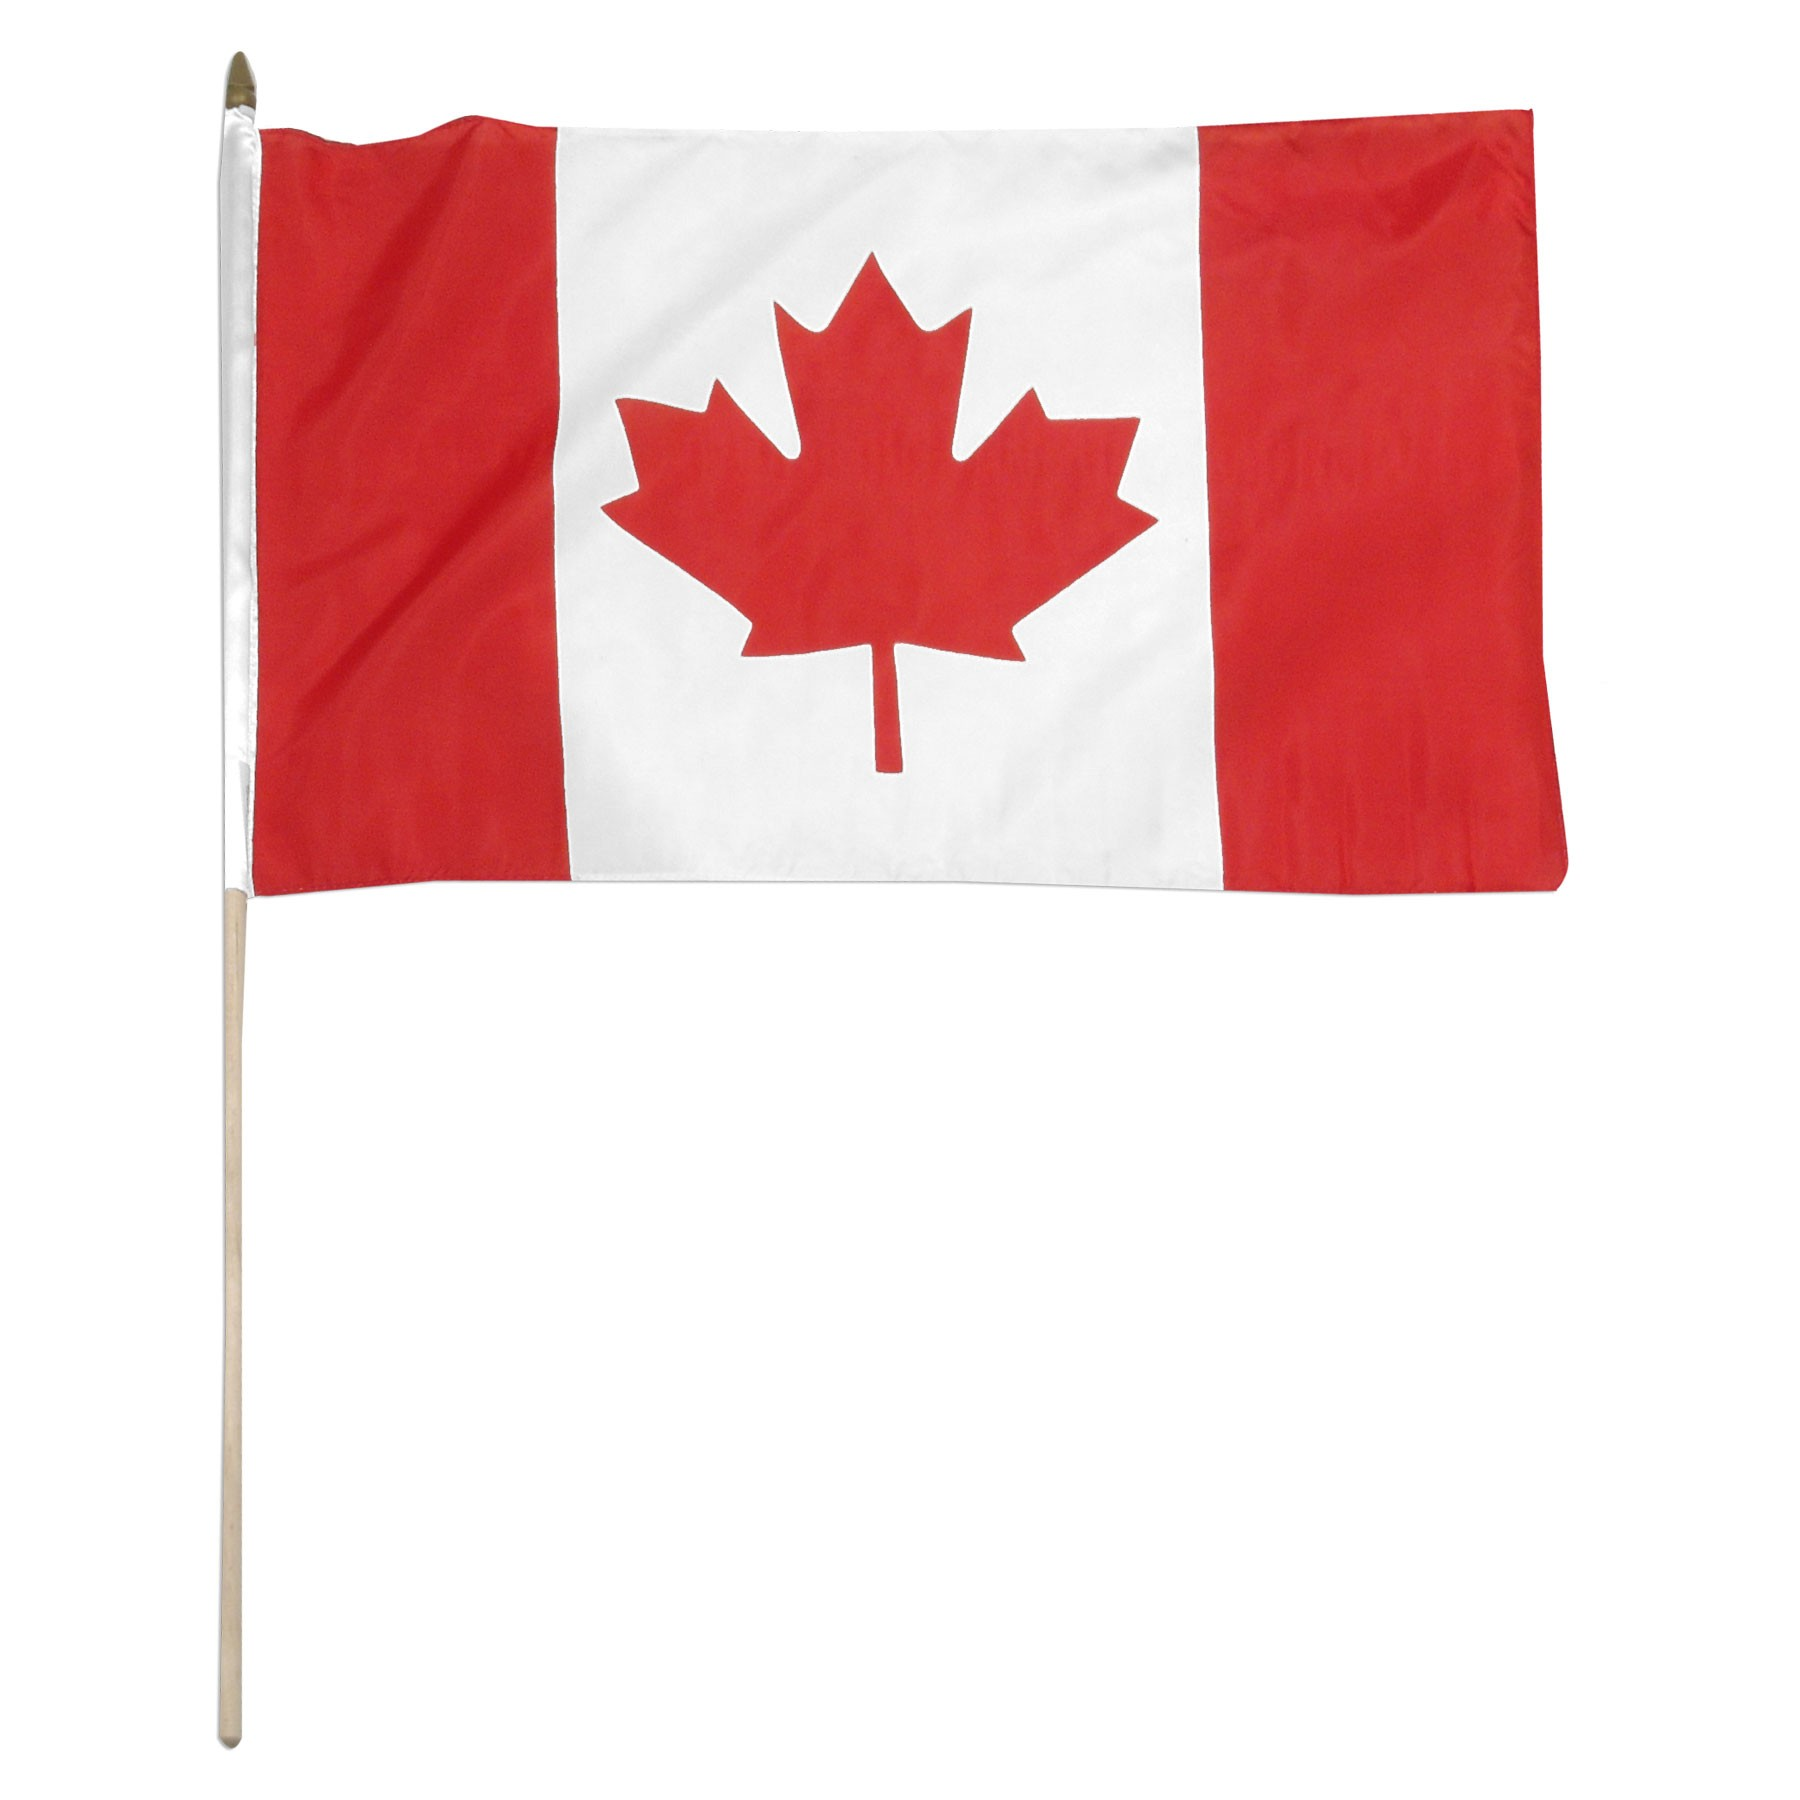 Free Canadian Cliparts, Download Free Clip Art, Free Clip Art on.